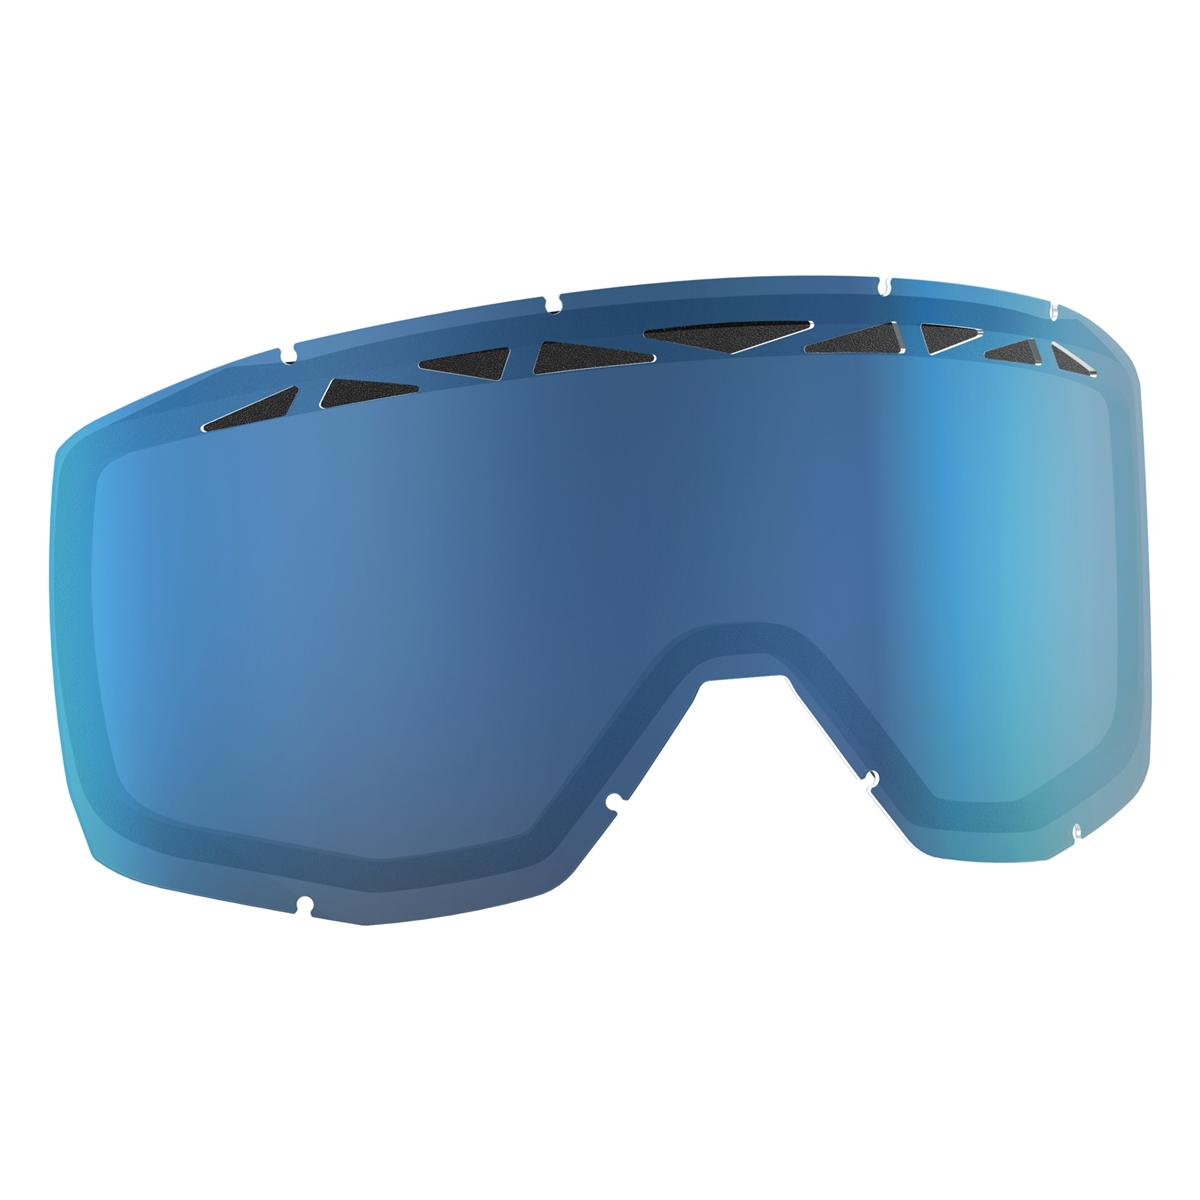 Replacement Double lens with ACS for HUSTLE/PRIMAL/SPLIT OTG/TYRANT Goggles - Blue Antifog